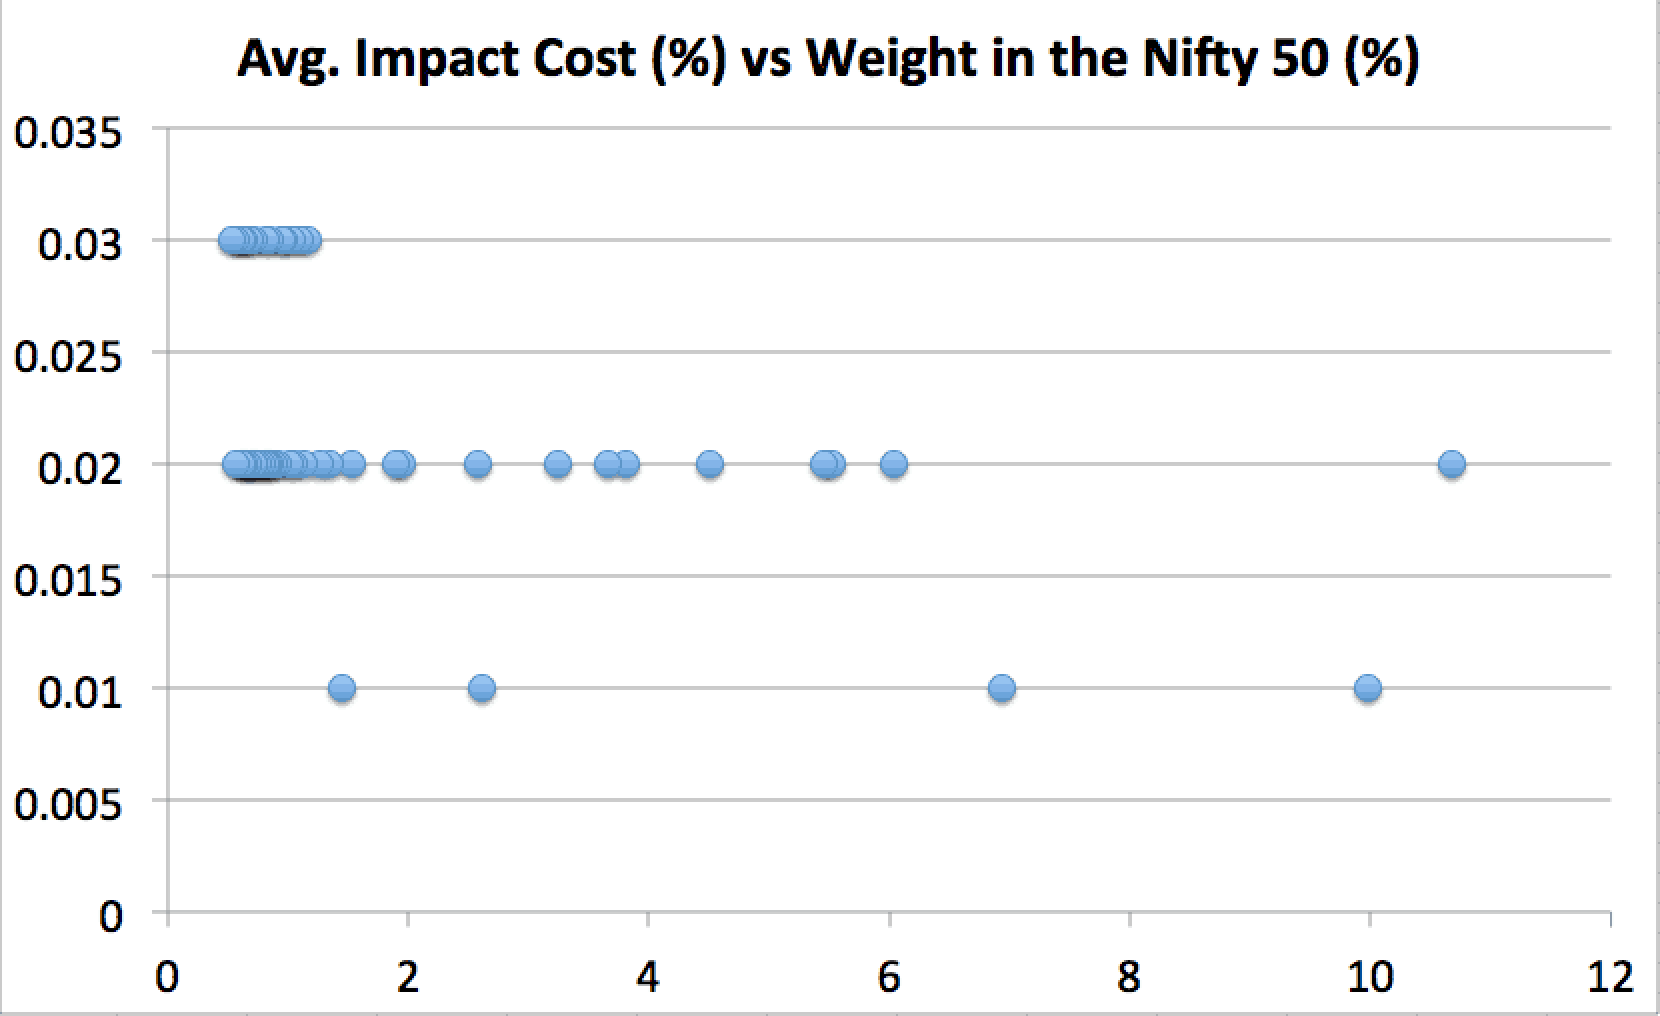 mpact cost of Nifty 50 stocks (March 2019) vs weightage